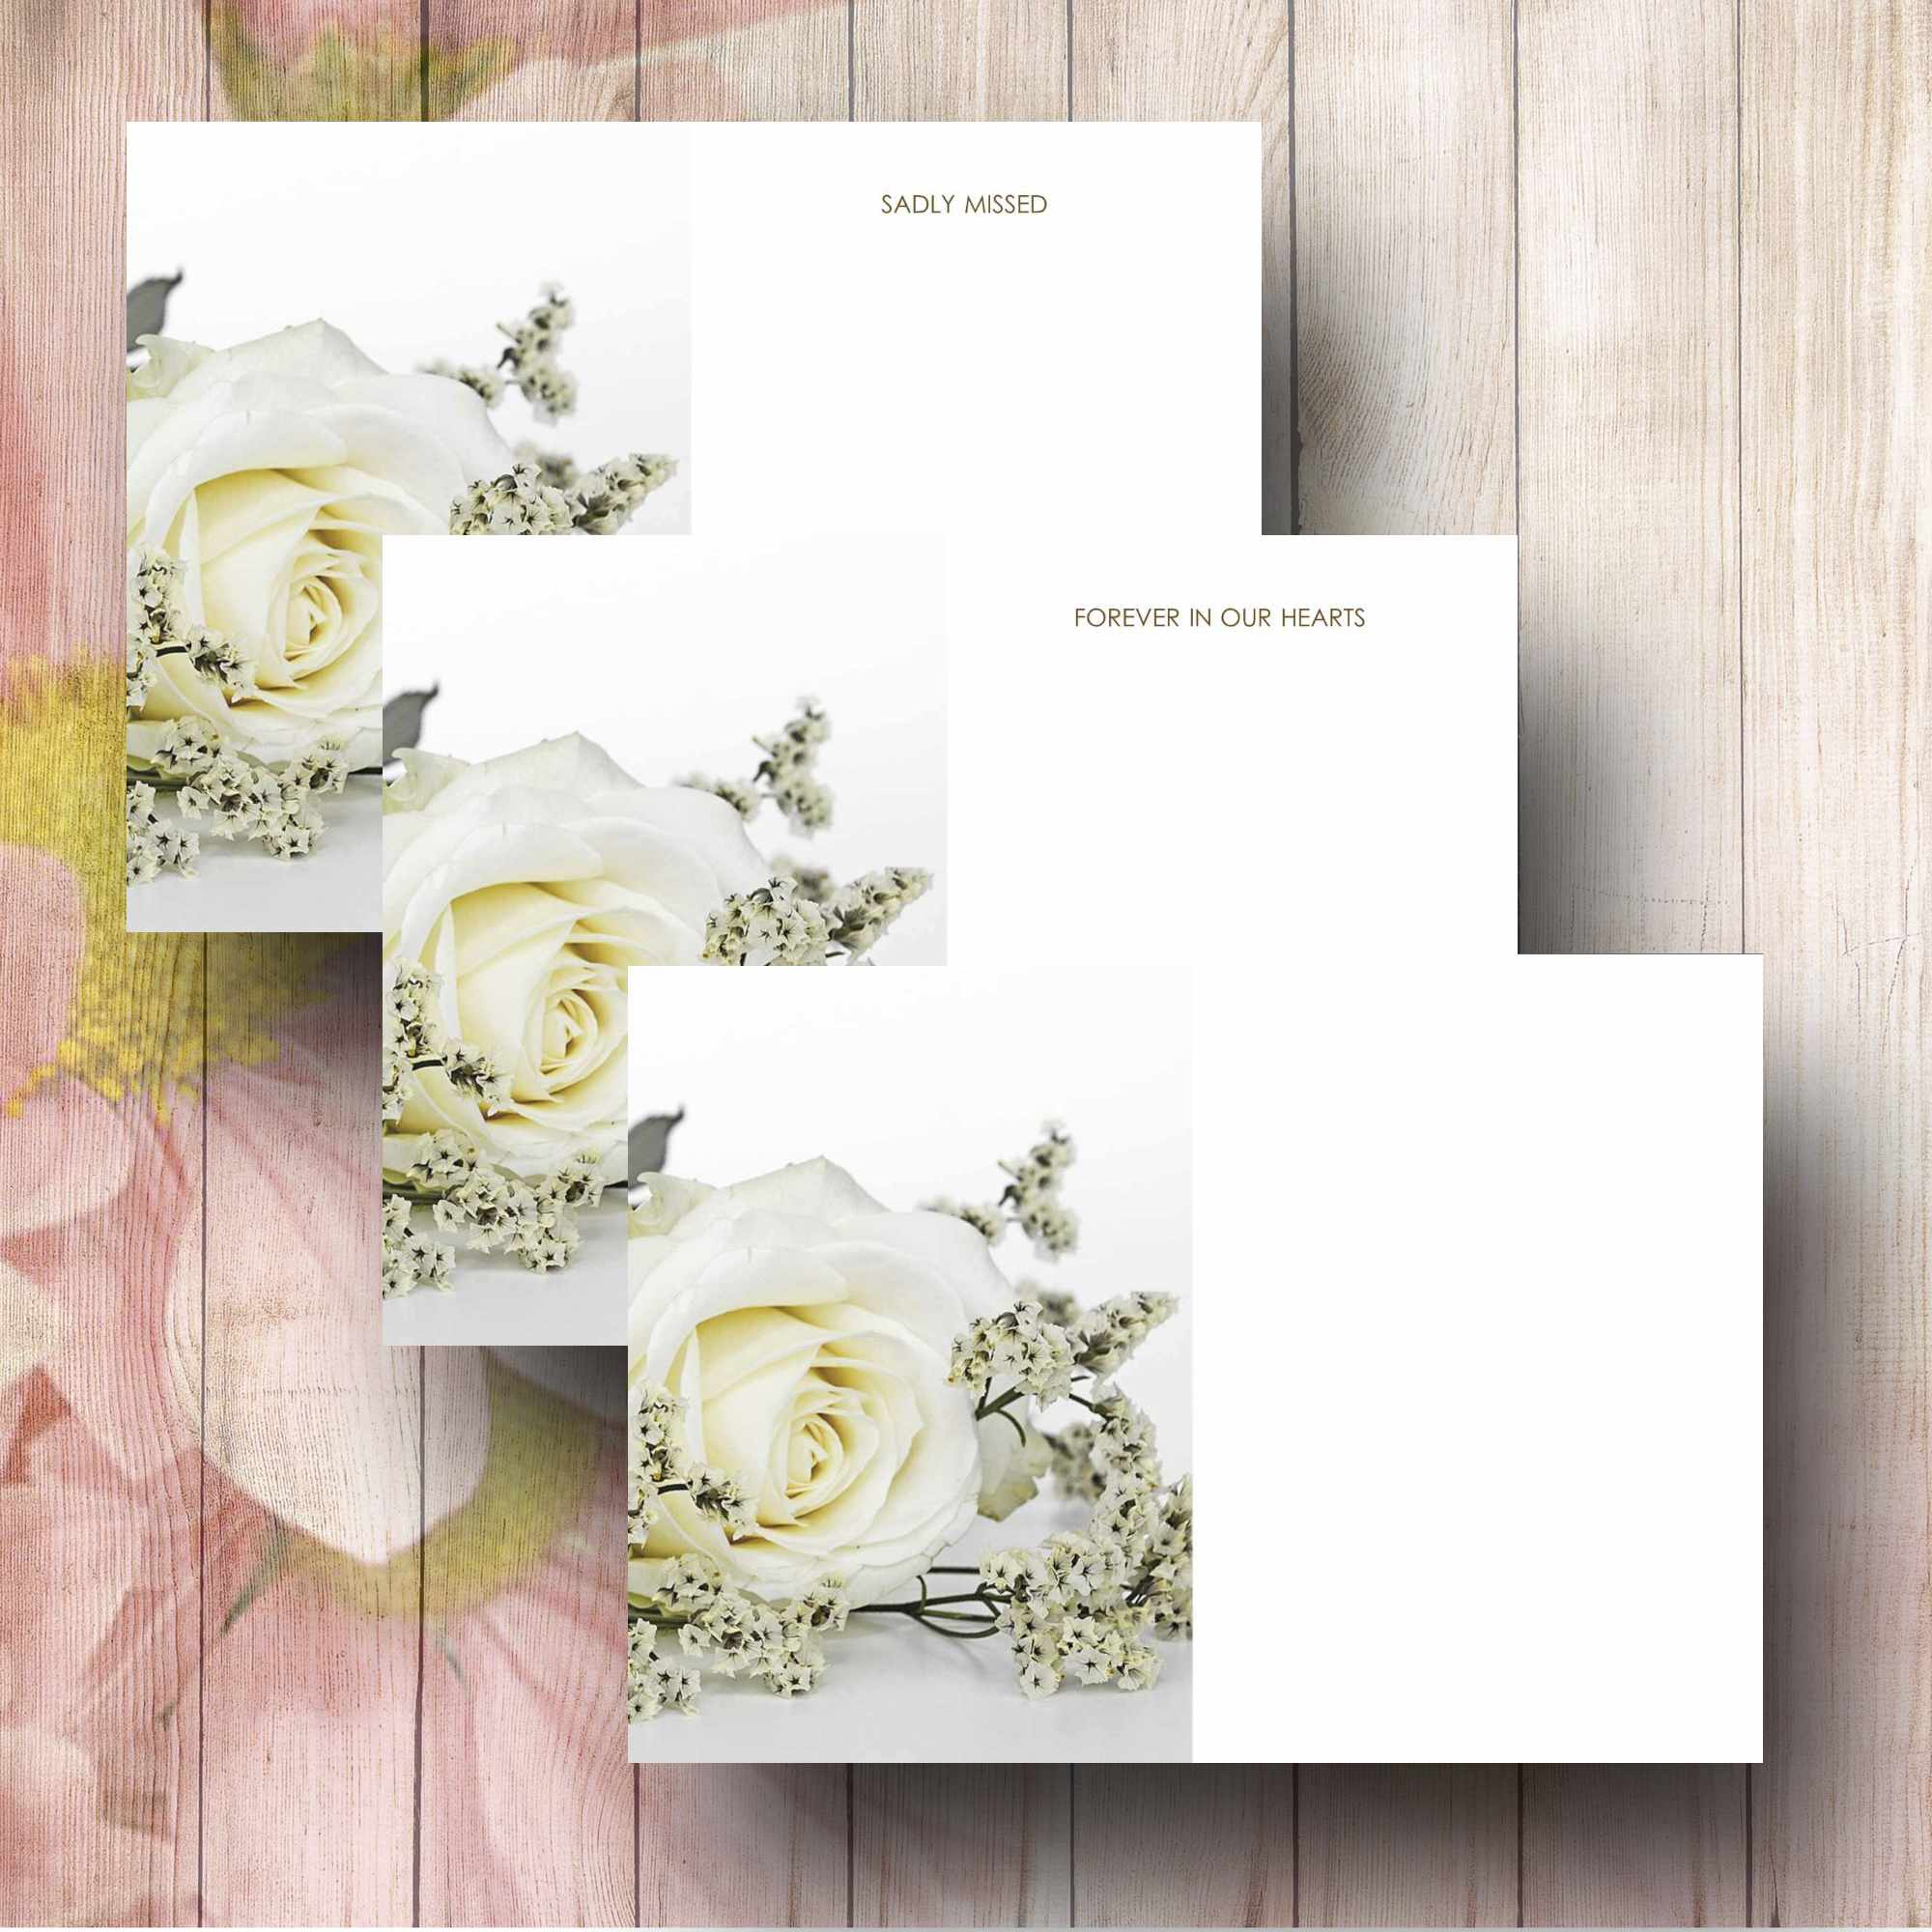 White Rose Florist Funeral Message Card